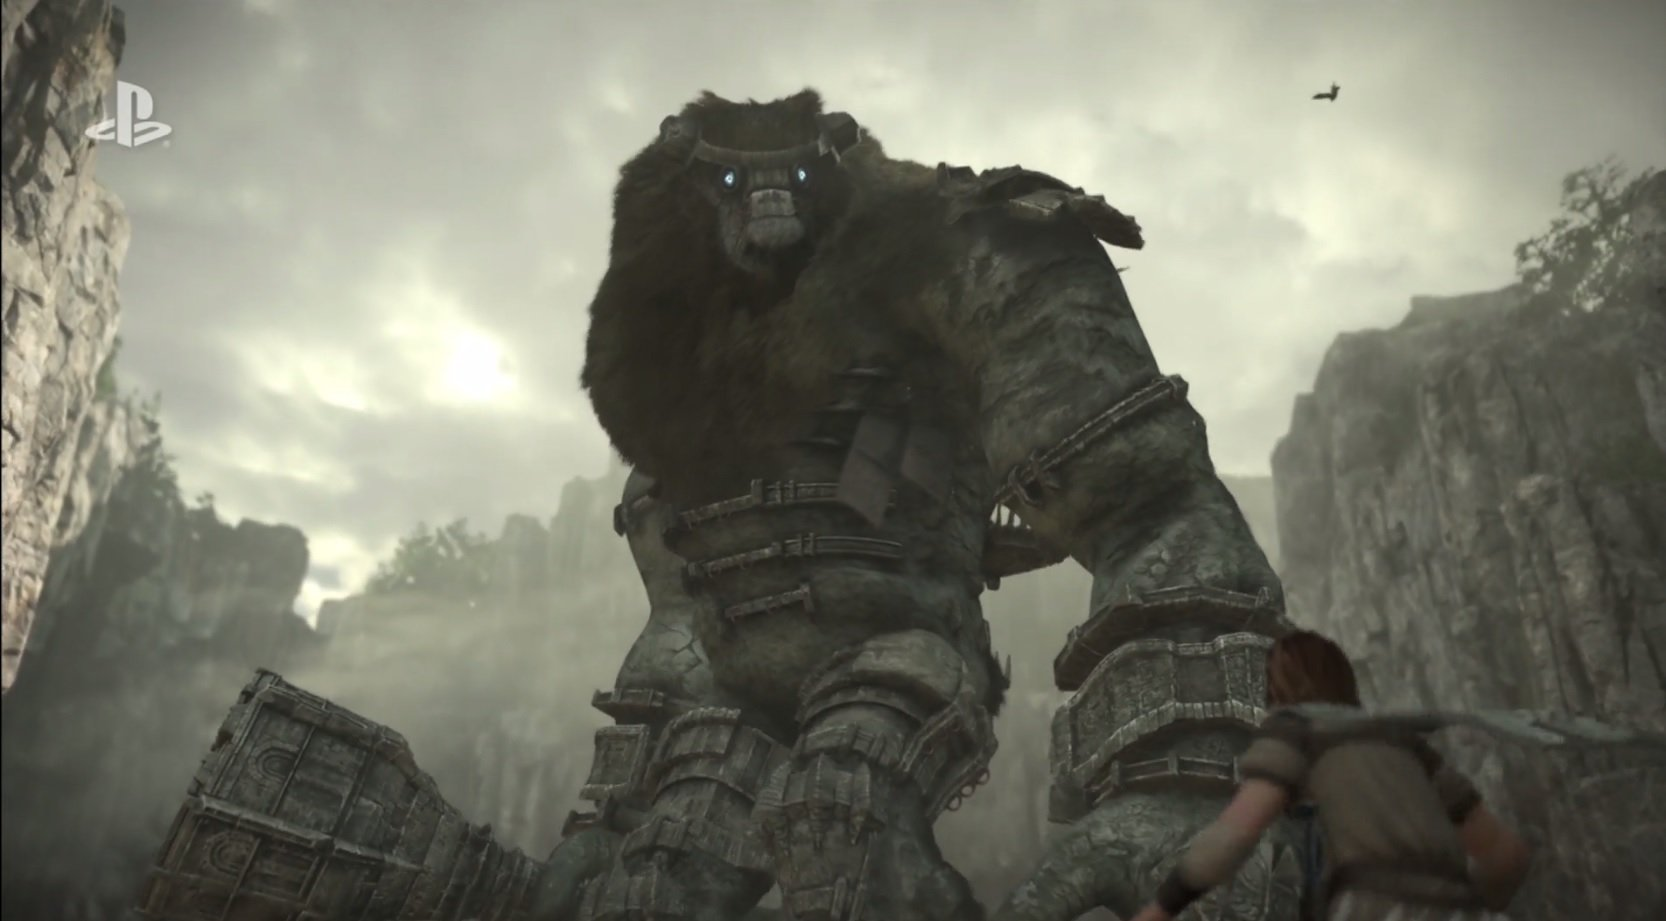 Shadow of the Colossus is getting a remake screenshot